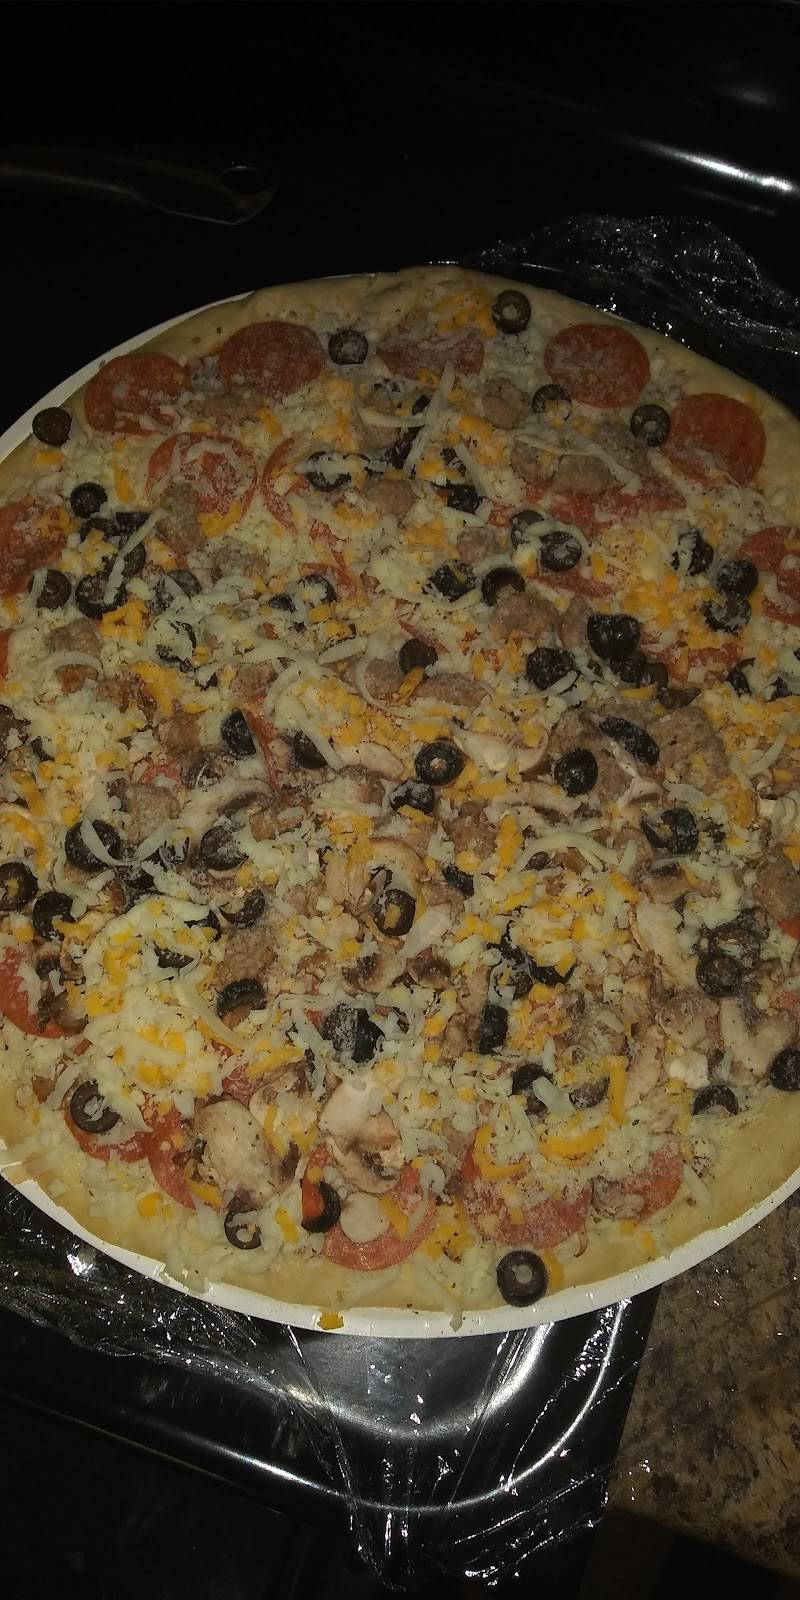 Papa Murphys Take N Bake Pizza | meal takeaway | 117 Northcreek Blvd, Goodlettsville, TN 37072, USA | 6158591711 OR +1 615-859-1711